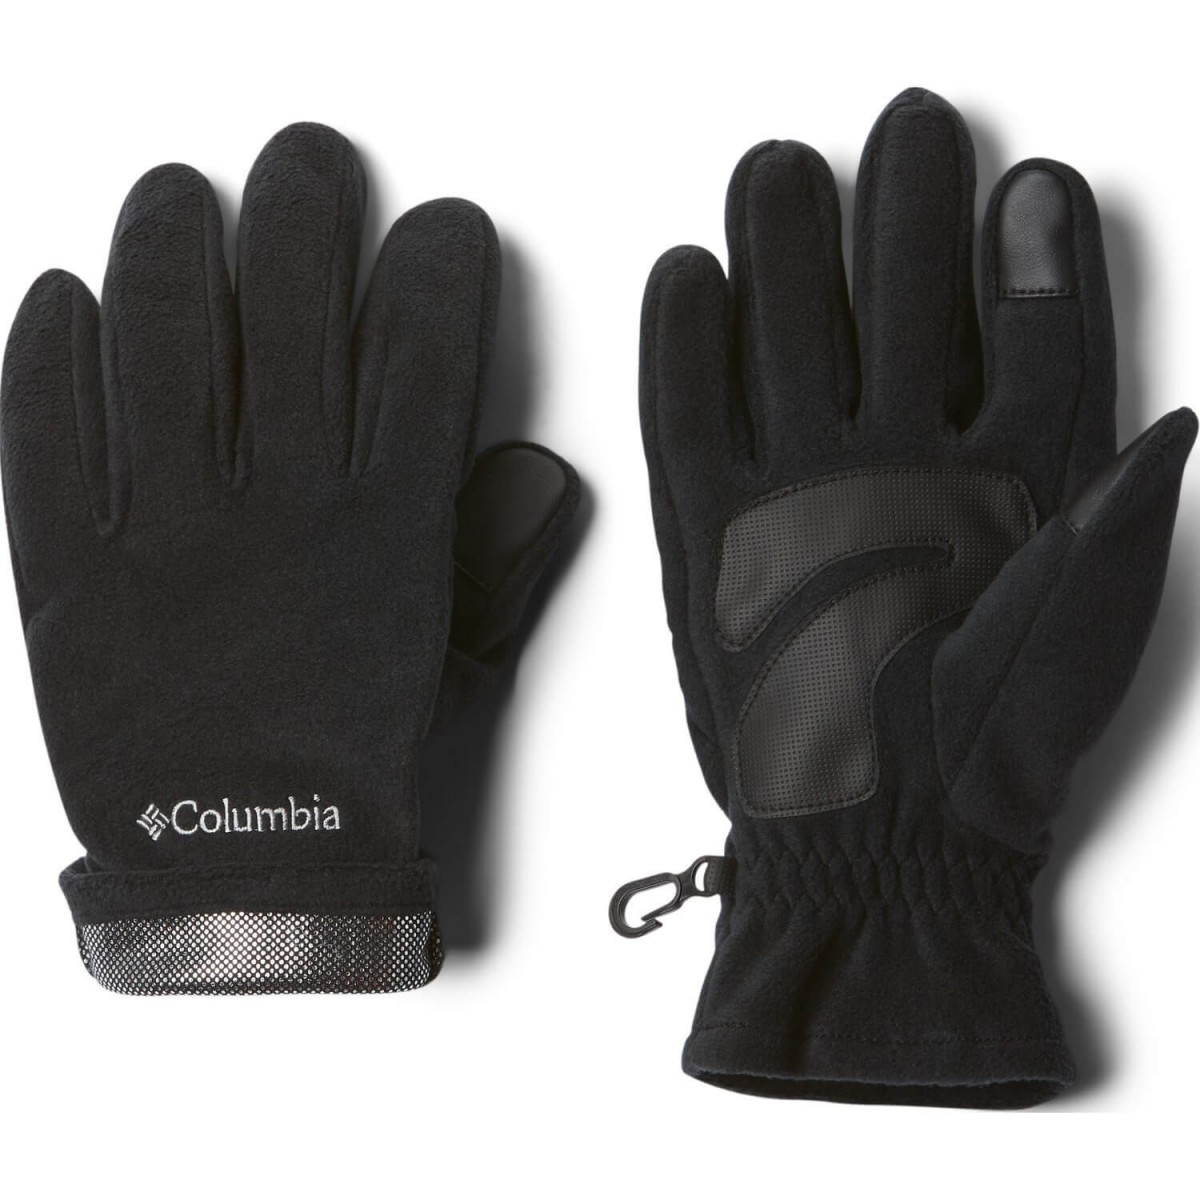 Mai multe Bărbați Outdoor Columbia M Thermarator Glove Negre -2